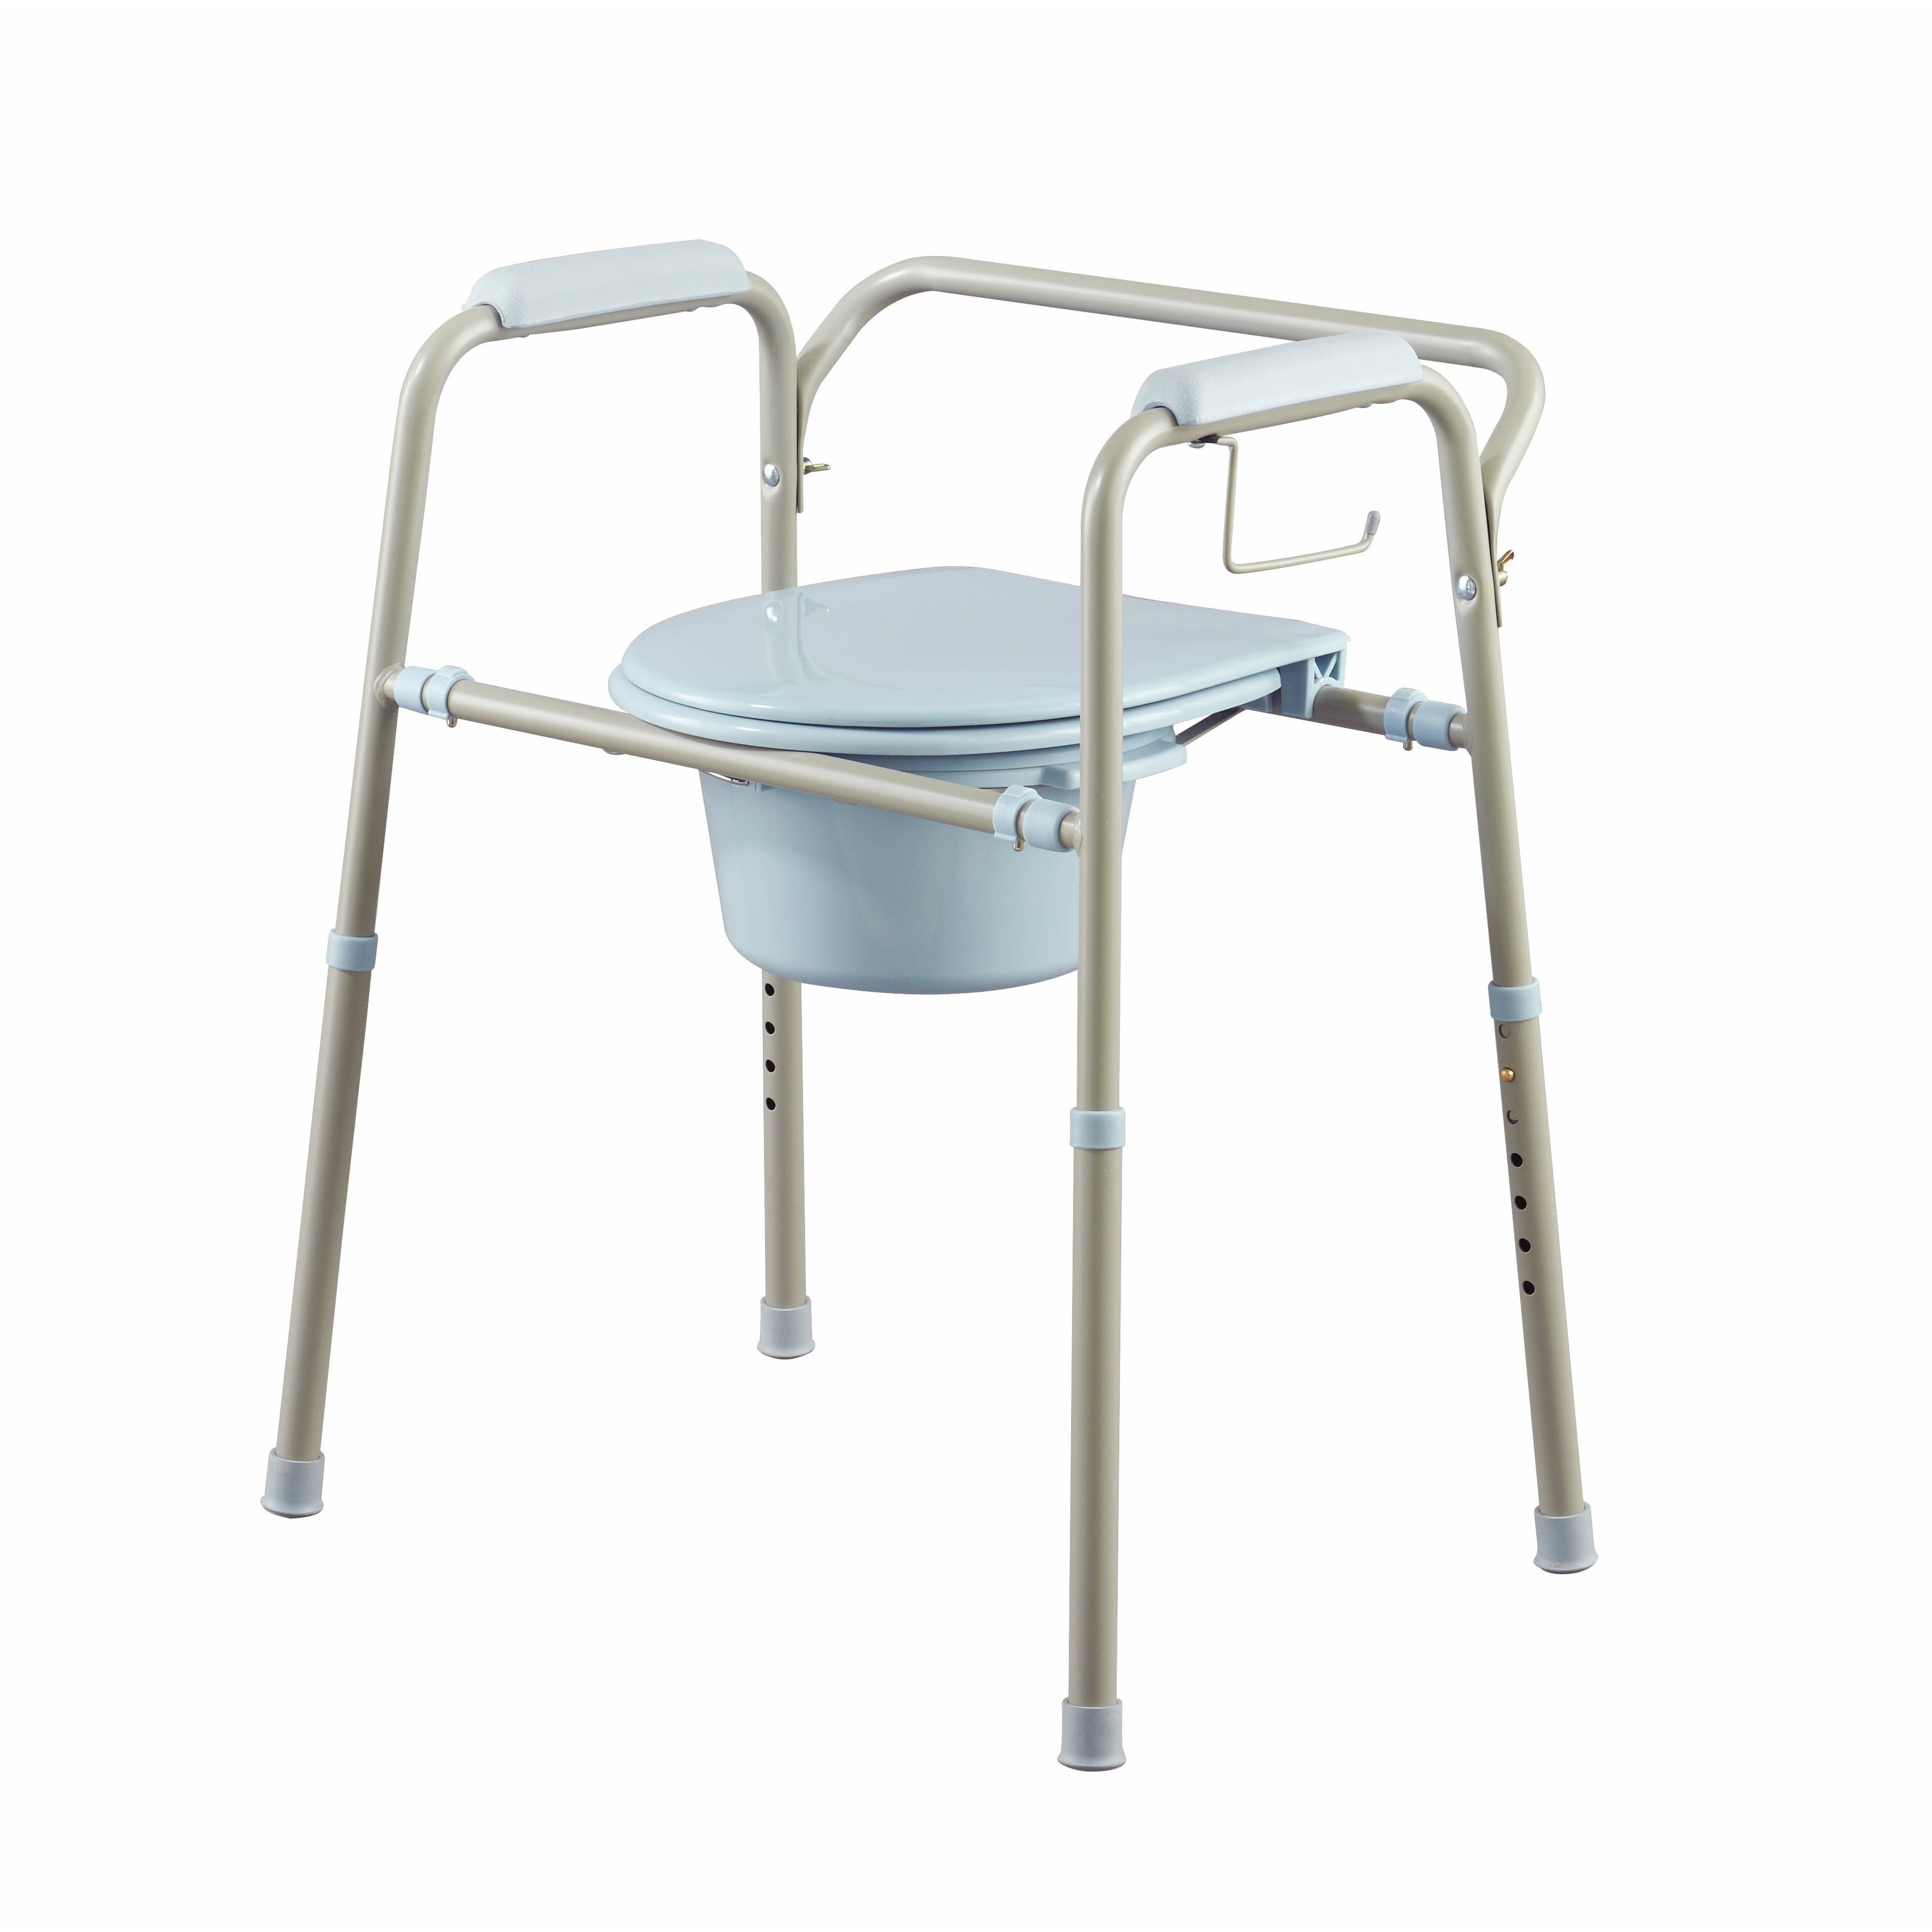 medline Adult Commode Chair Portable Toilet Support Seat Bedside Bathroom 350 Lbs. Gray